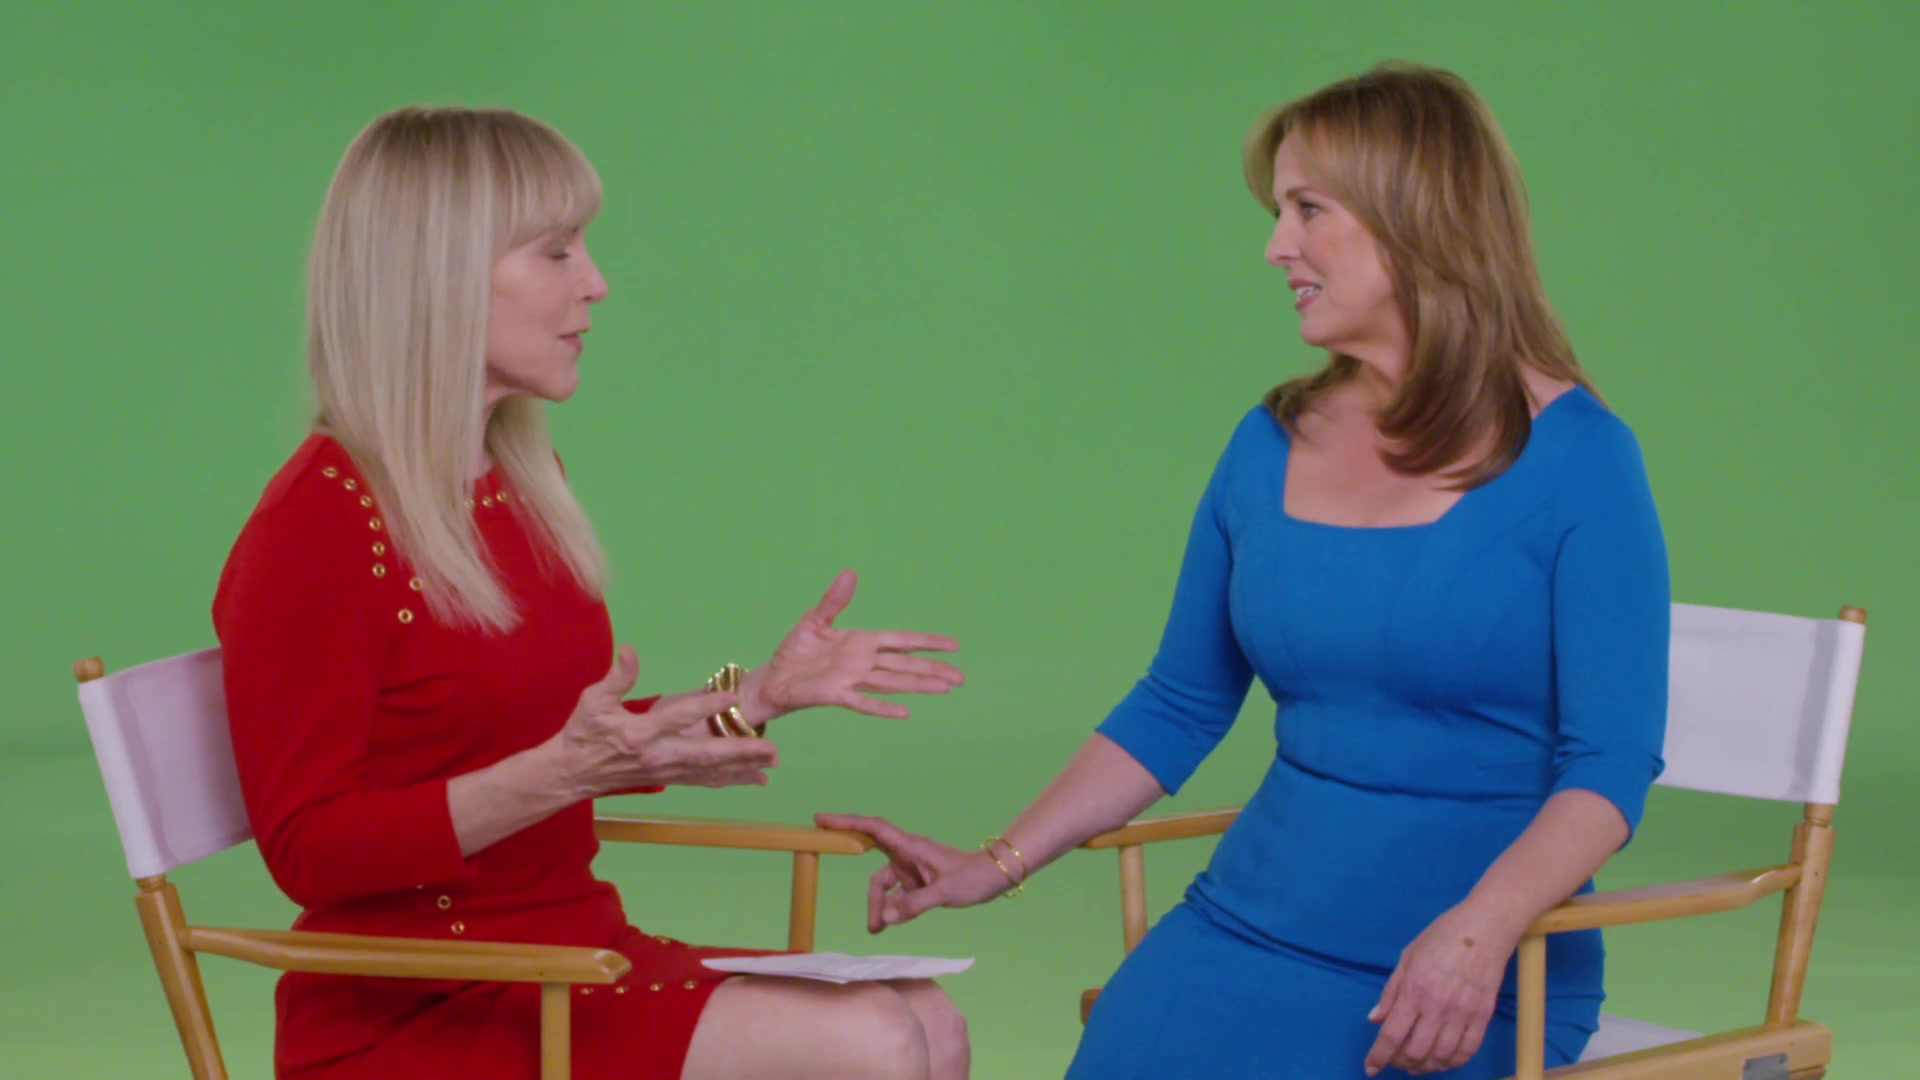 'General Hospital's' Genie Francis on Losing Weight and Loving Life